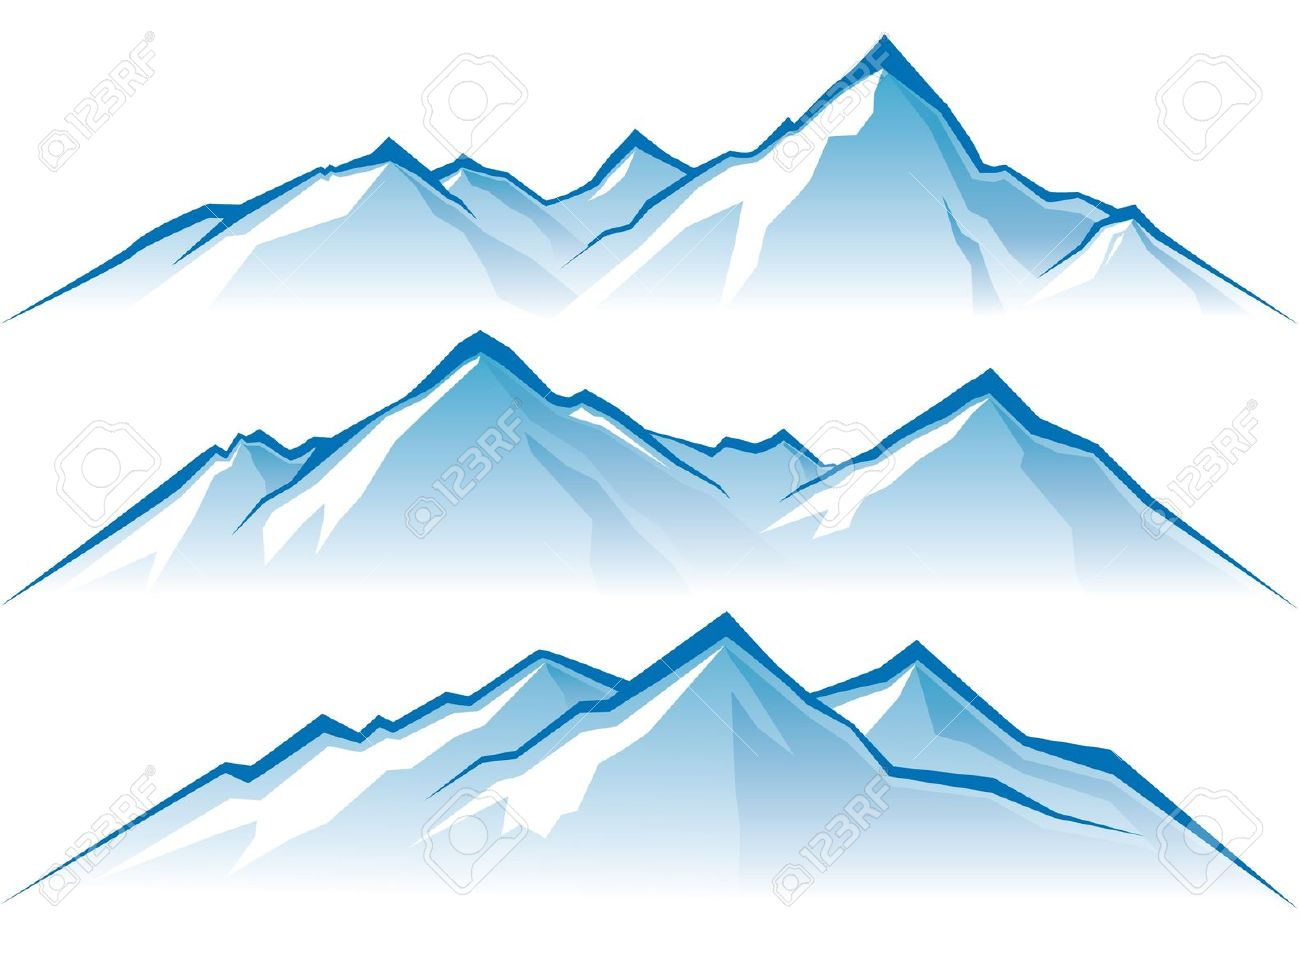 Snow mountain clipart.